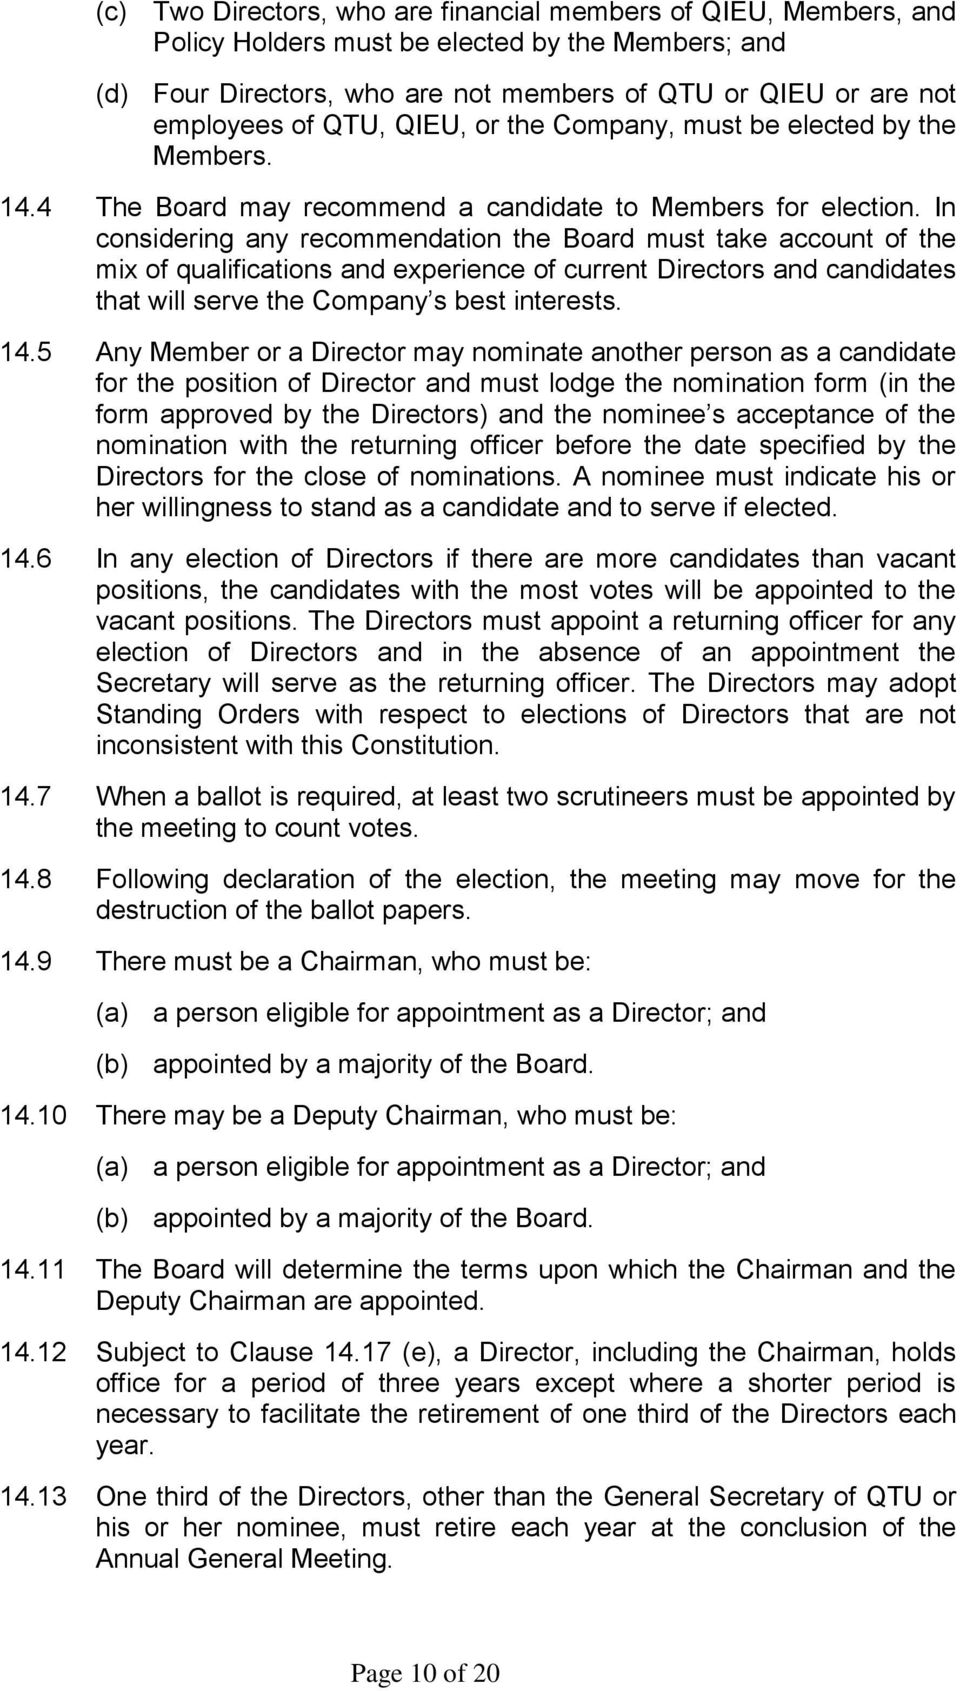 In considering any recommendation the Board must take account of the mix of qualifications and experience of current Directors and candidates that will serve the Company s best interests. 14.